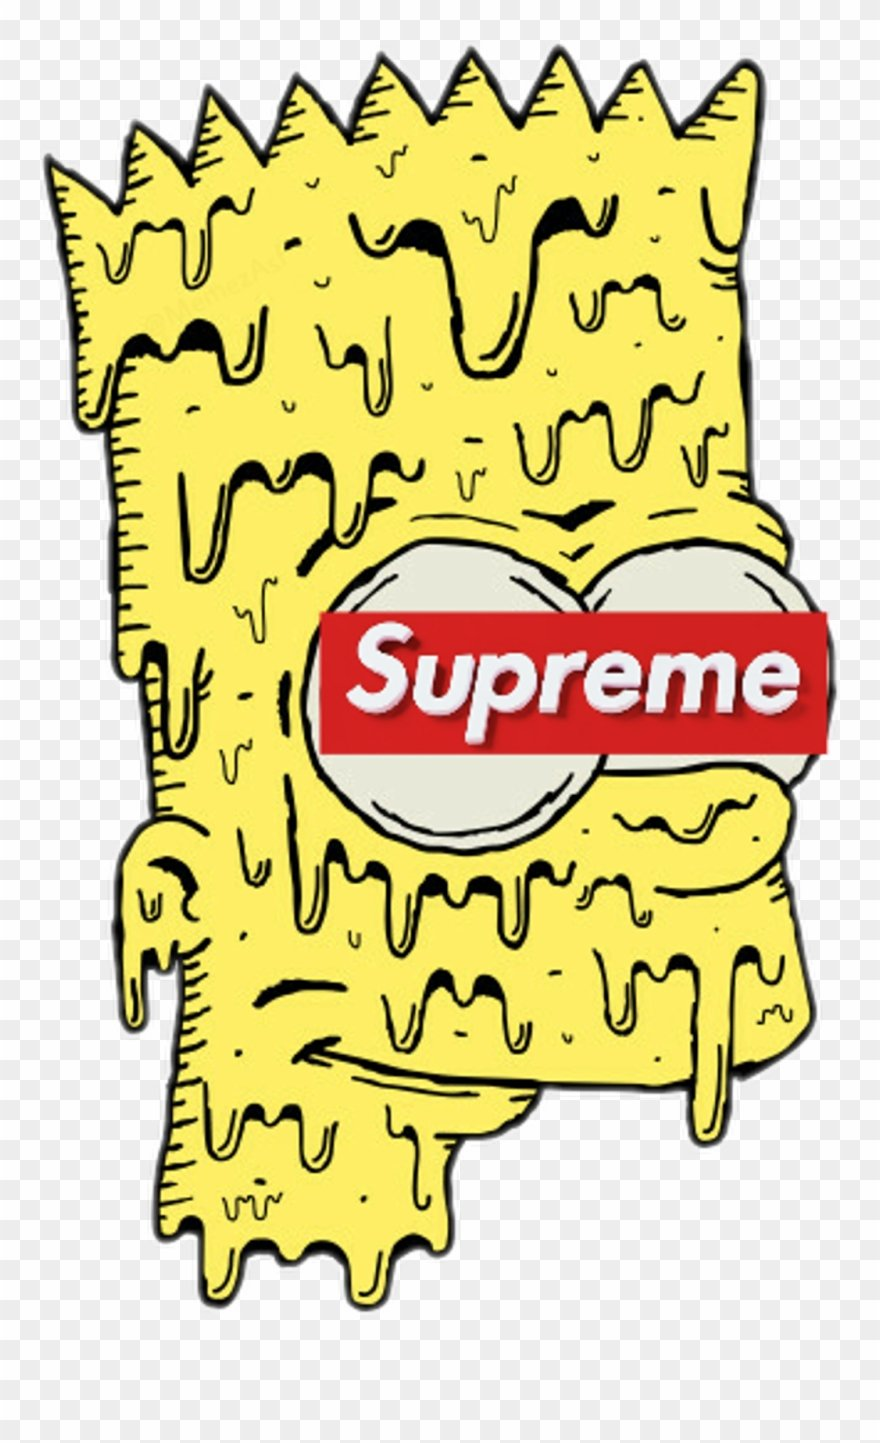 bart supreme simpsons thesimpsons bartsimpson   Bart Supreme 880x1443